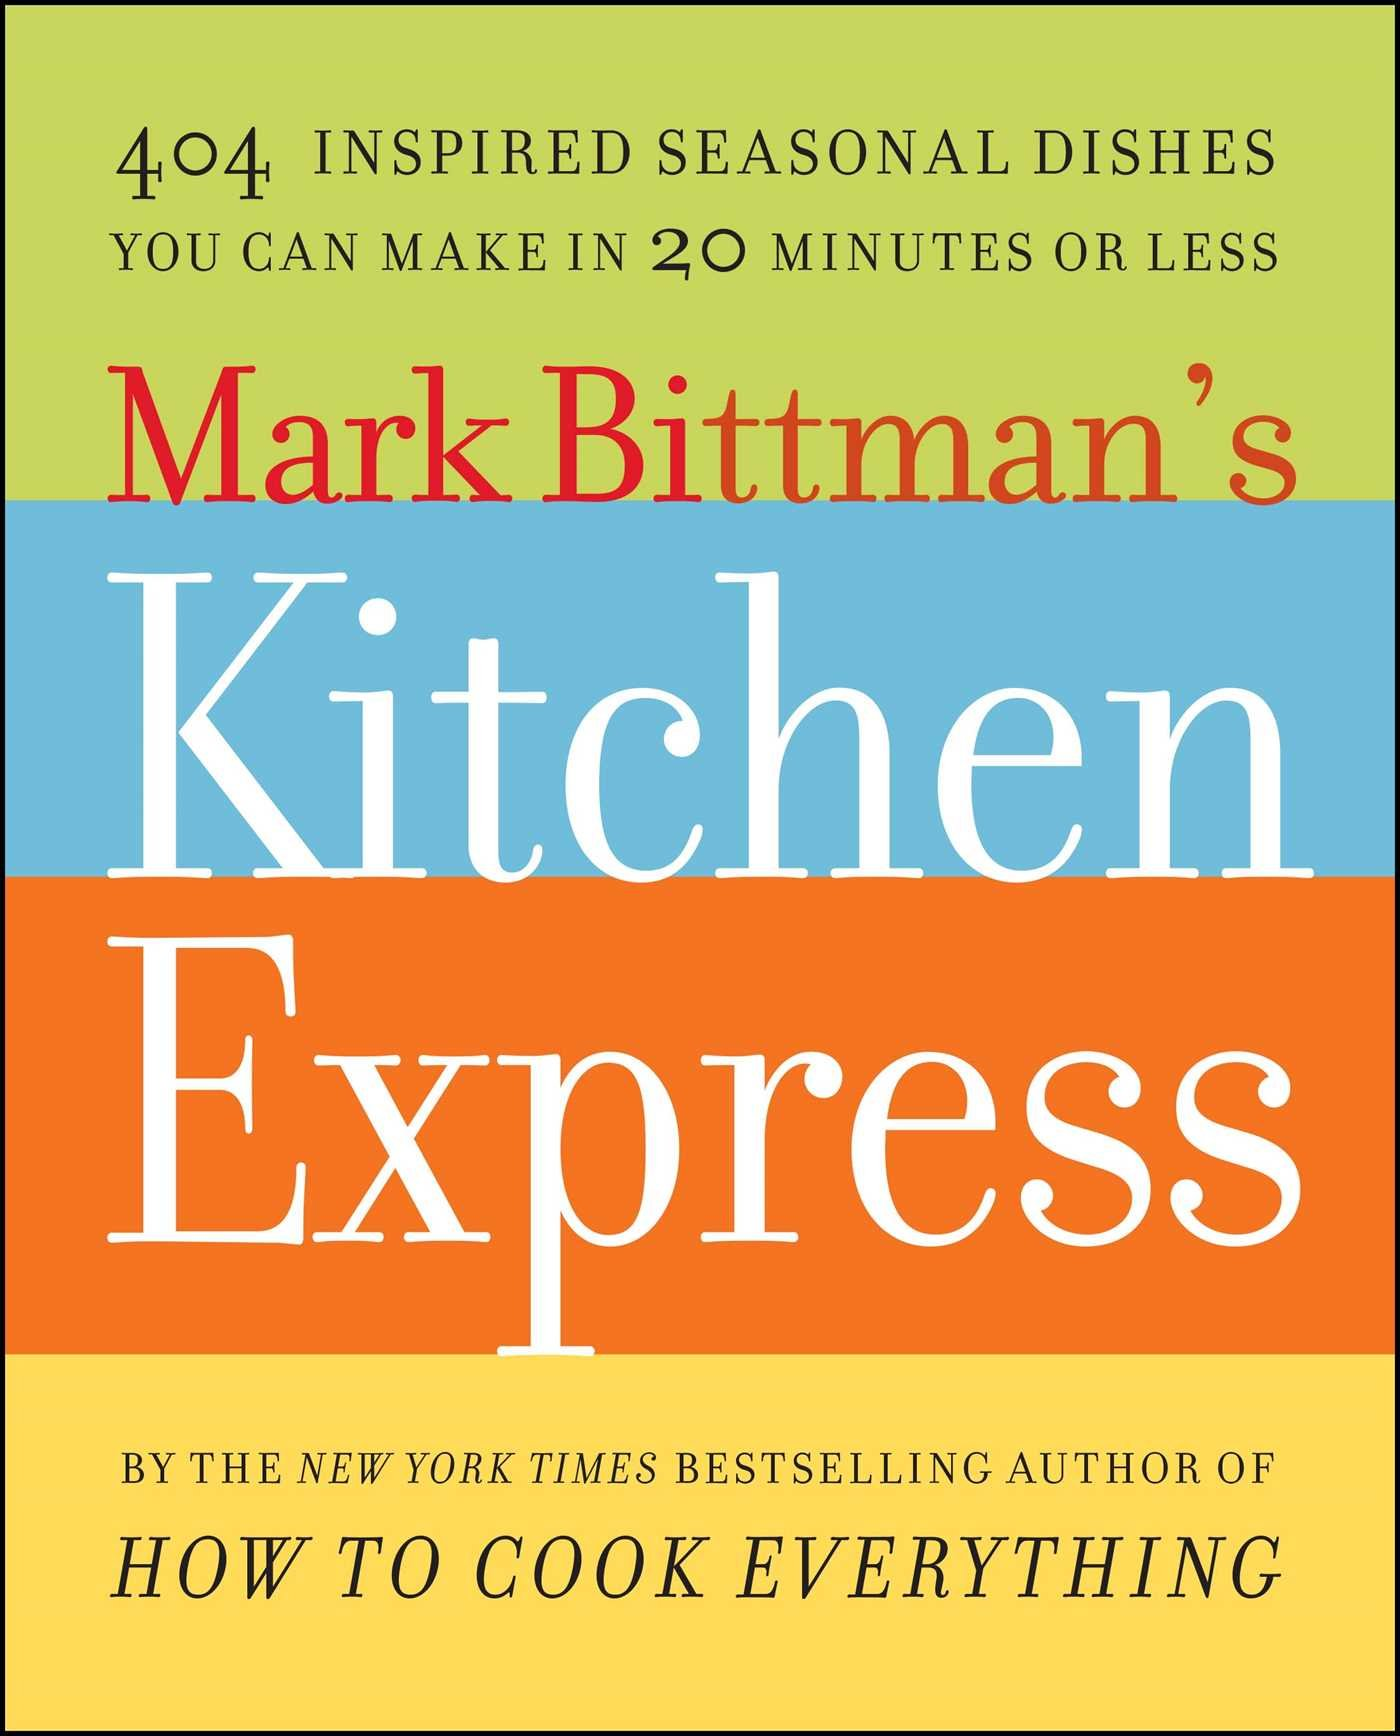 mark bittman s kitchen express 404 inspired seasonal dishes you